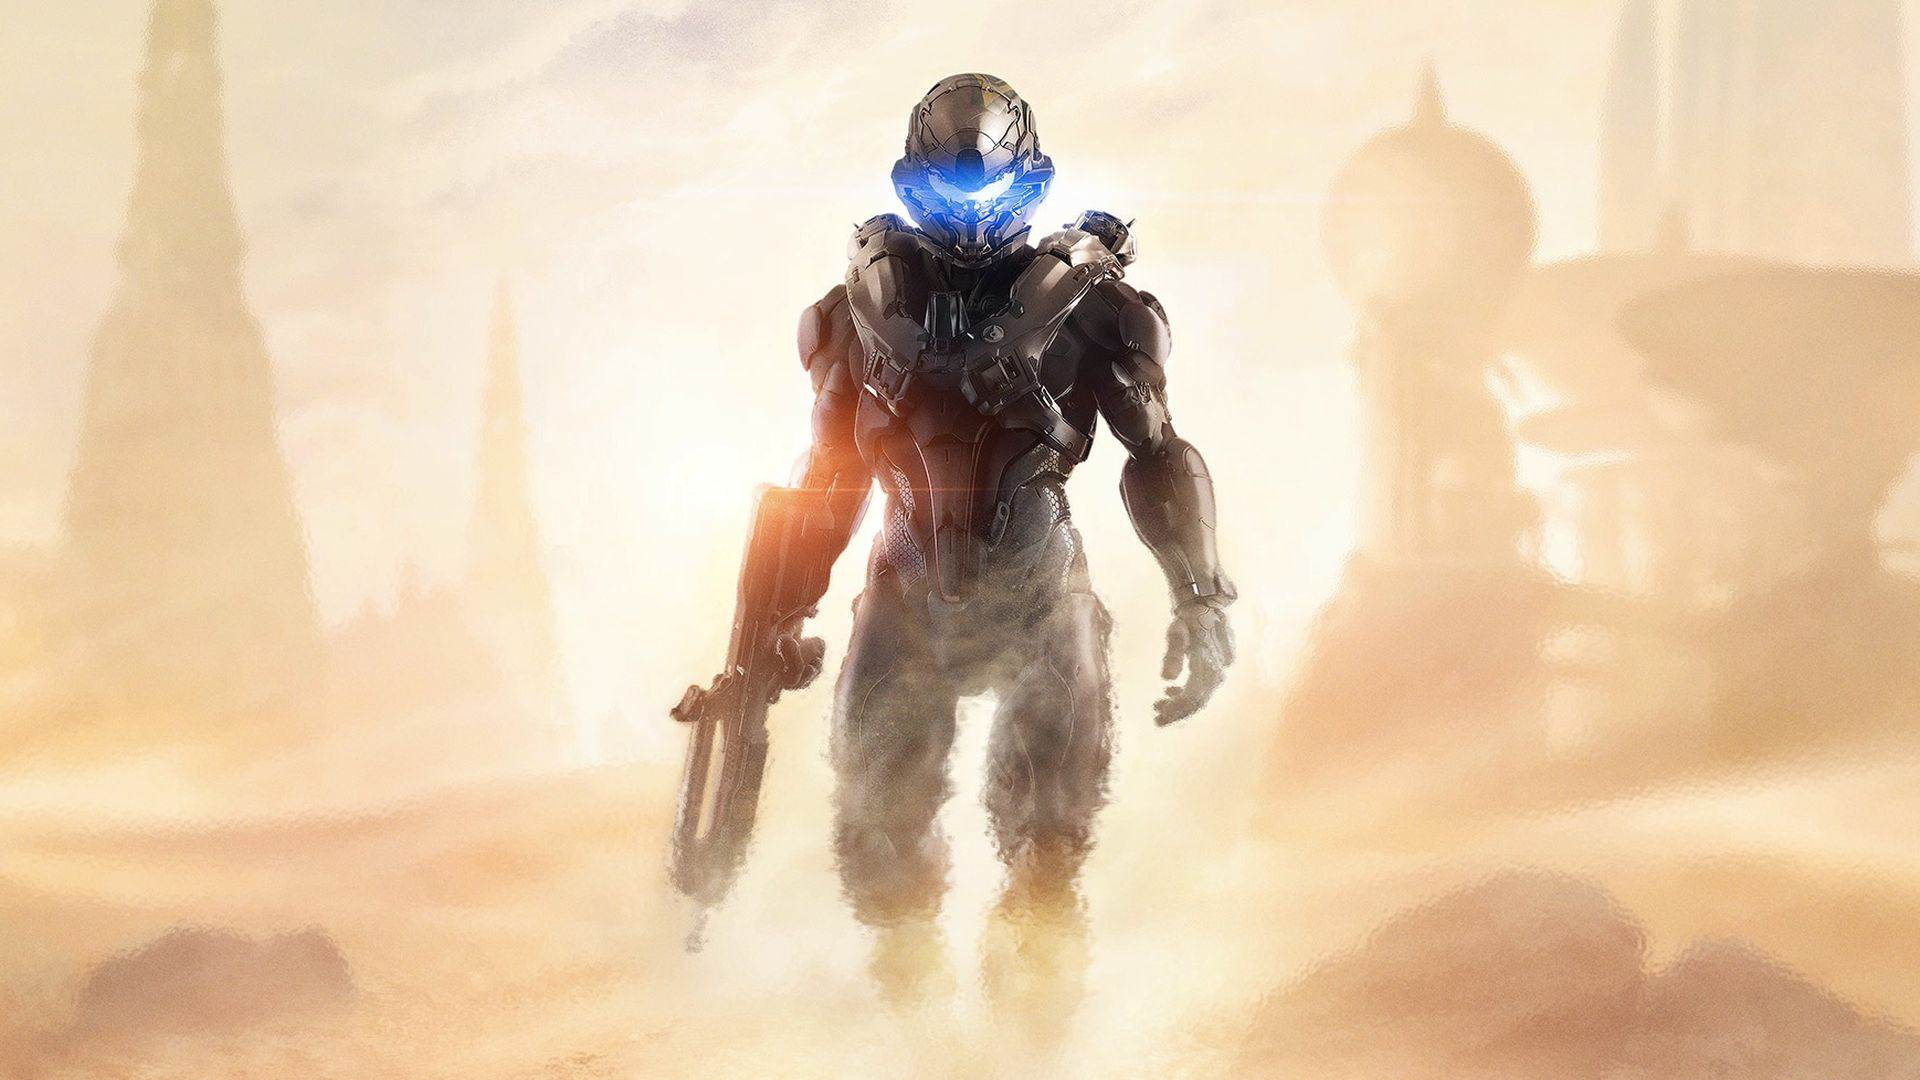 halo 5.0.0 Halo 5s Moving Tribute To Fan Facing Awful Tragedy